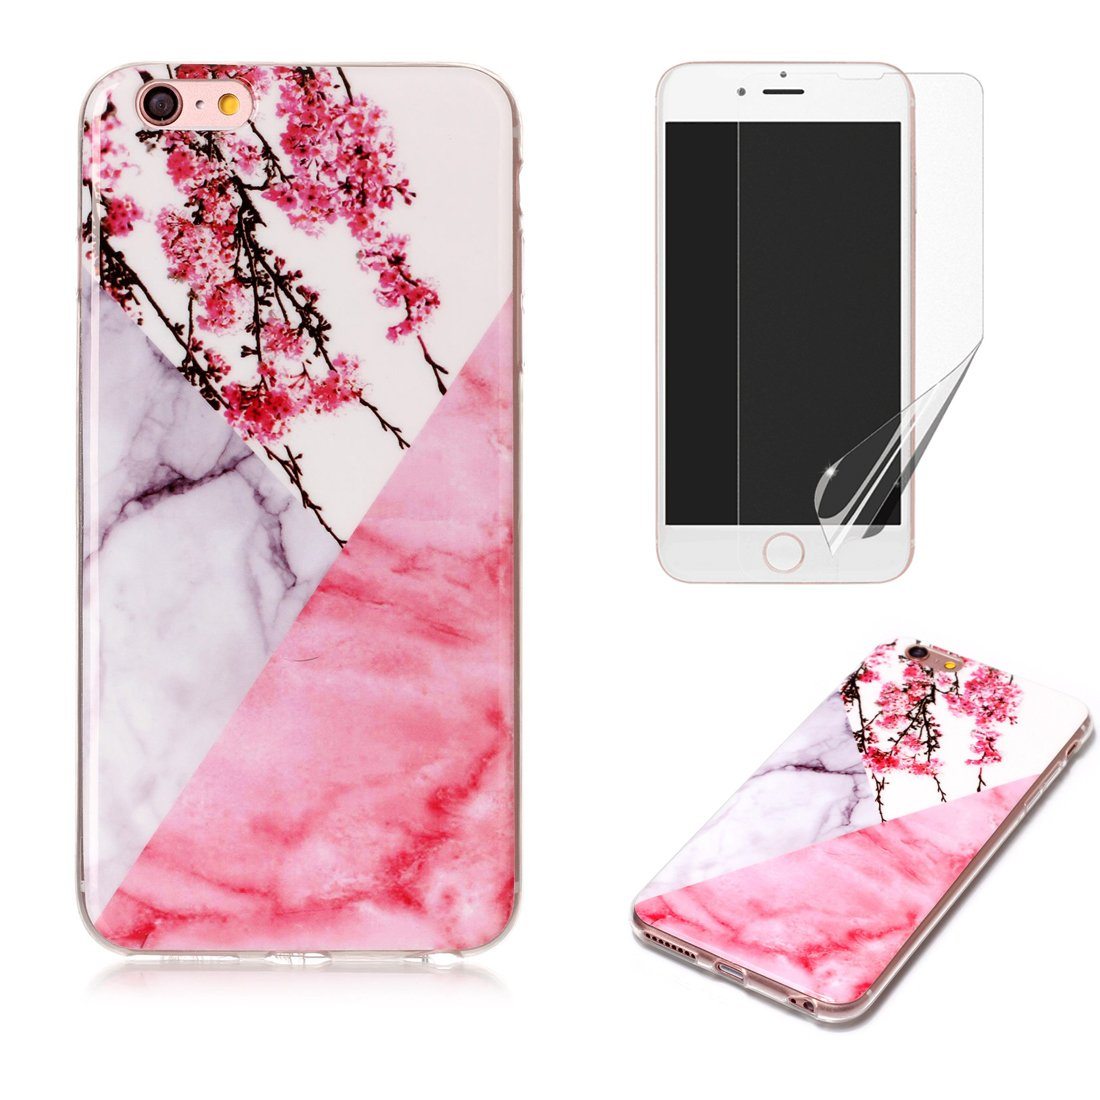 for iPhone 4/iPhone 4S Marble Case with Screen Protector, OYIME Creative Glossy Brick red & Black Marble Pattern Design Protective Bumper Soft Silicone Slim Thin Rubber Luxury Shockproof Cover